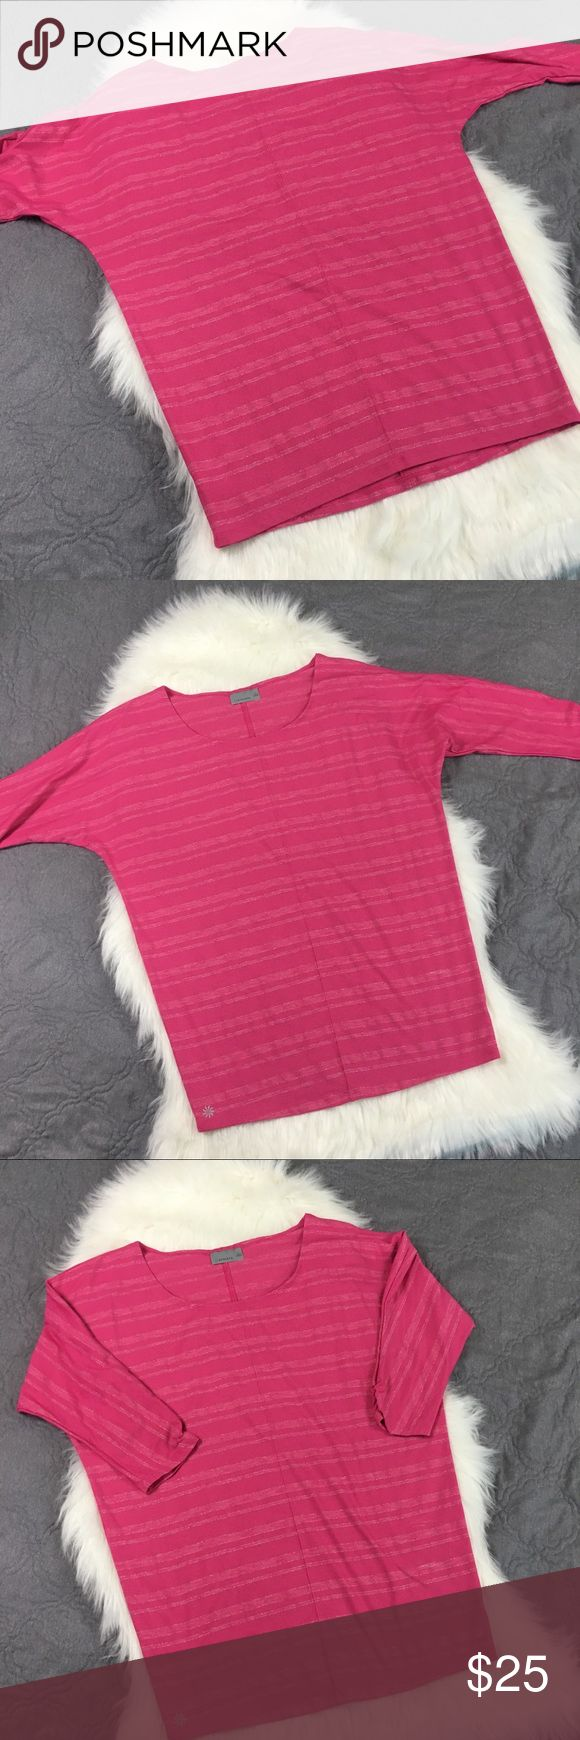 Athleta Pink & Silver Striped Batwing Tunic Top Comfy and cozy! This top will easily take you from yoga to lunch. Please see measurements in the photos, oversized fit. Excellent used condition. No trades but offers welcome Athleta Tops Tees - Long Sleeve